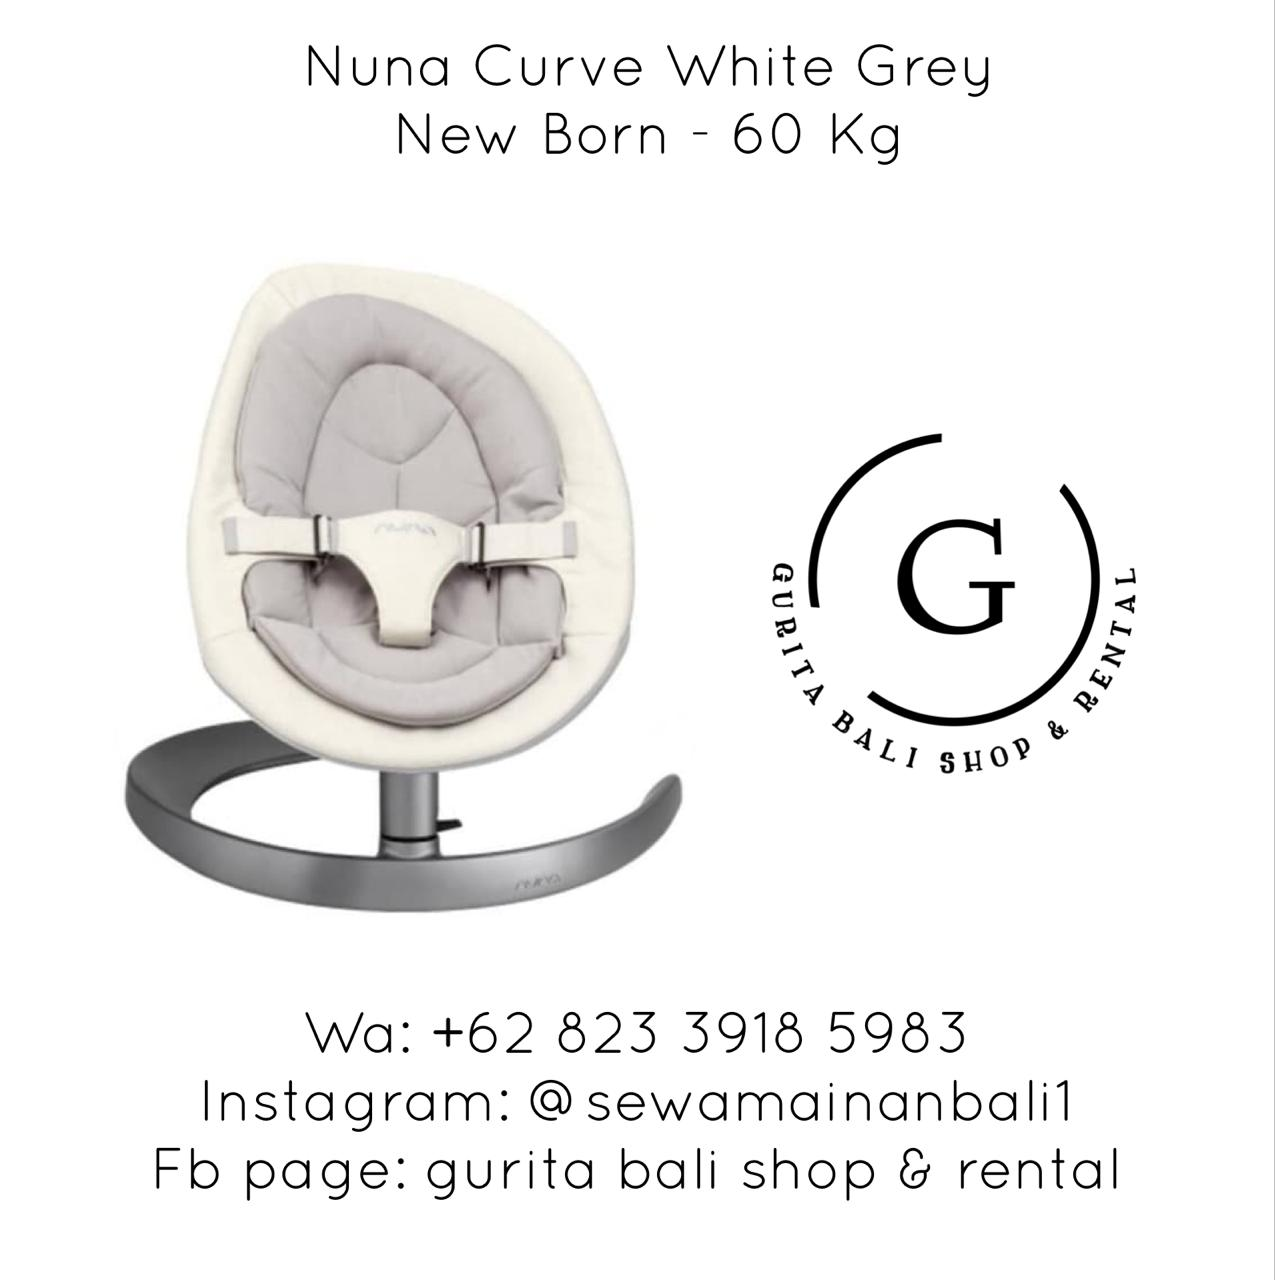 NUNA CURVE WHITE GREY